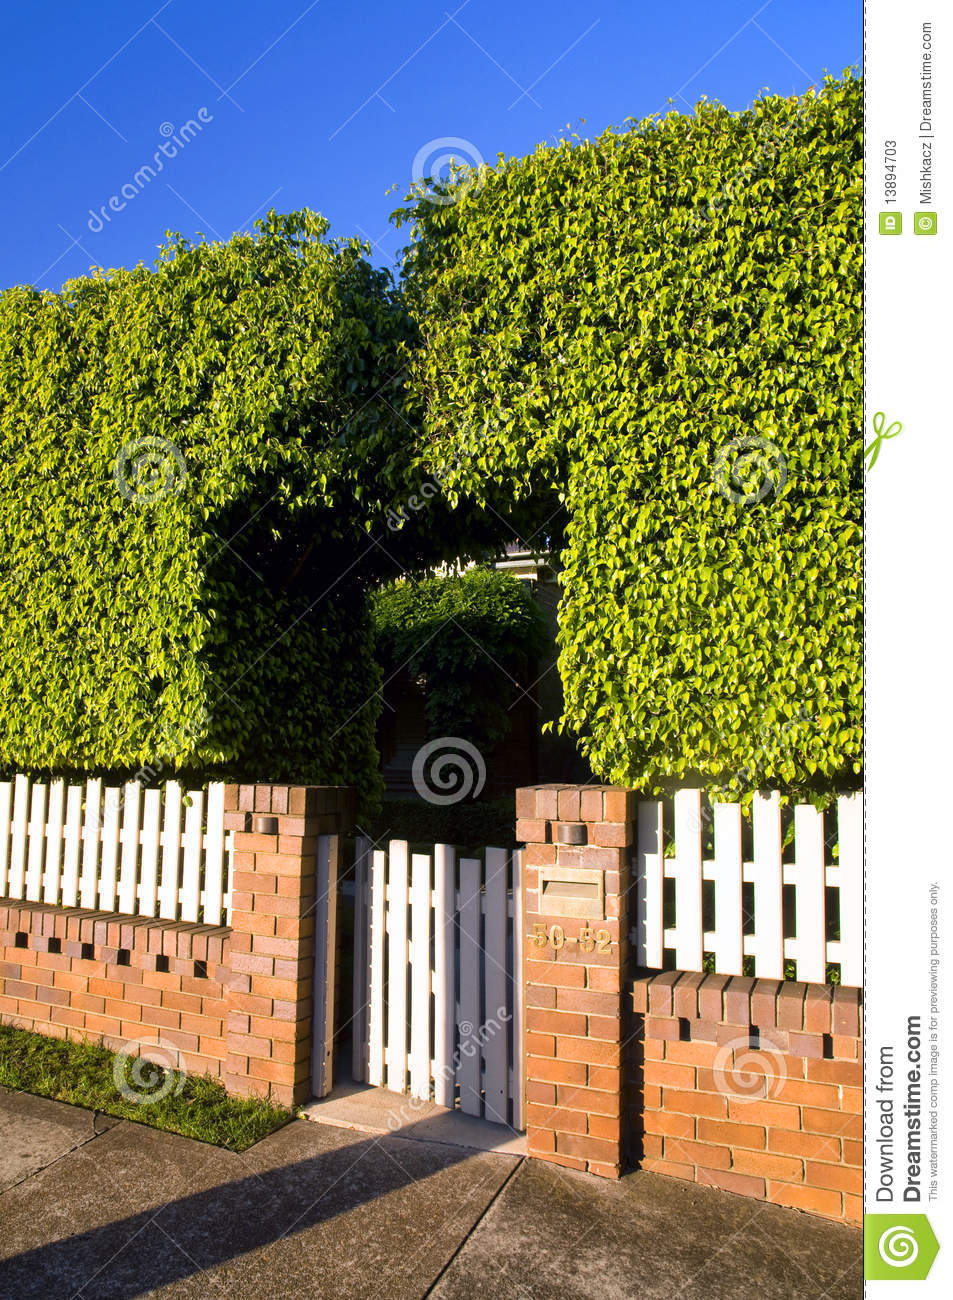 cerca para jardim branca : cerca para jardim branca:Brick and Wood Fence